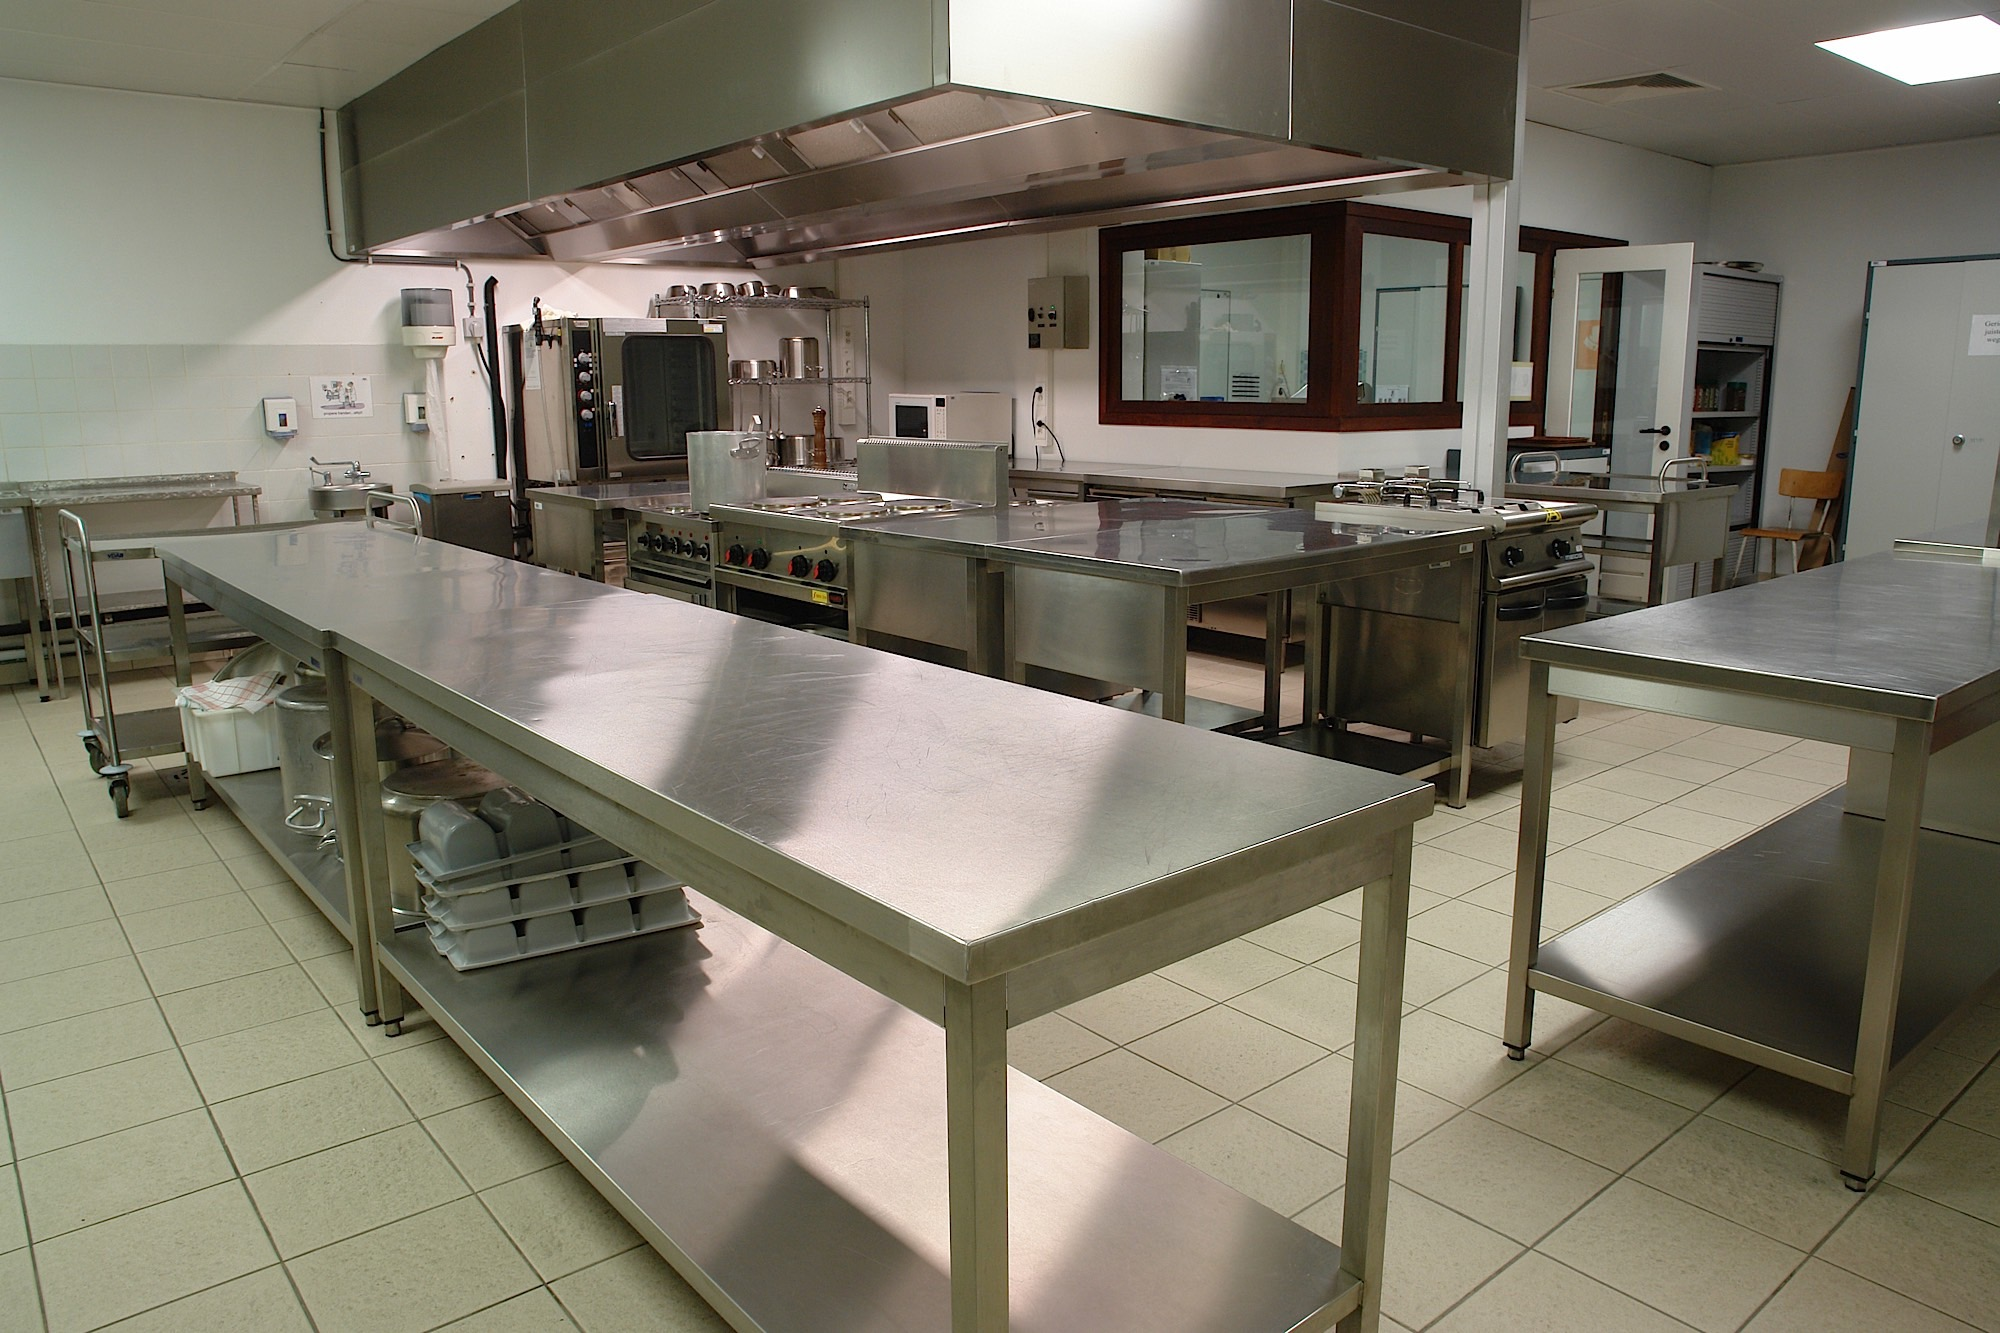 industrial kitchen cleaning services triple sink hood mr vac your is important